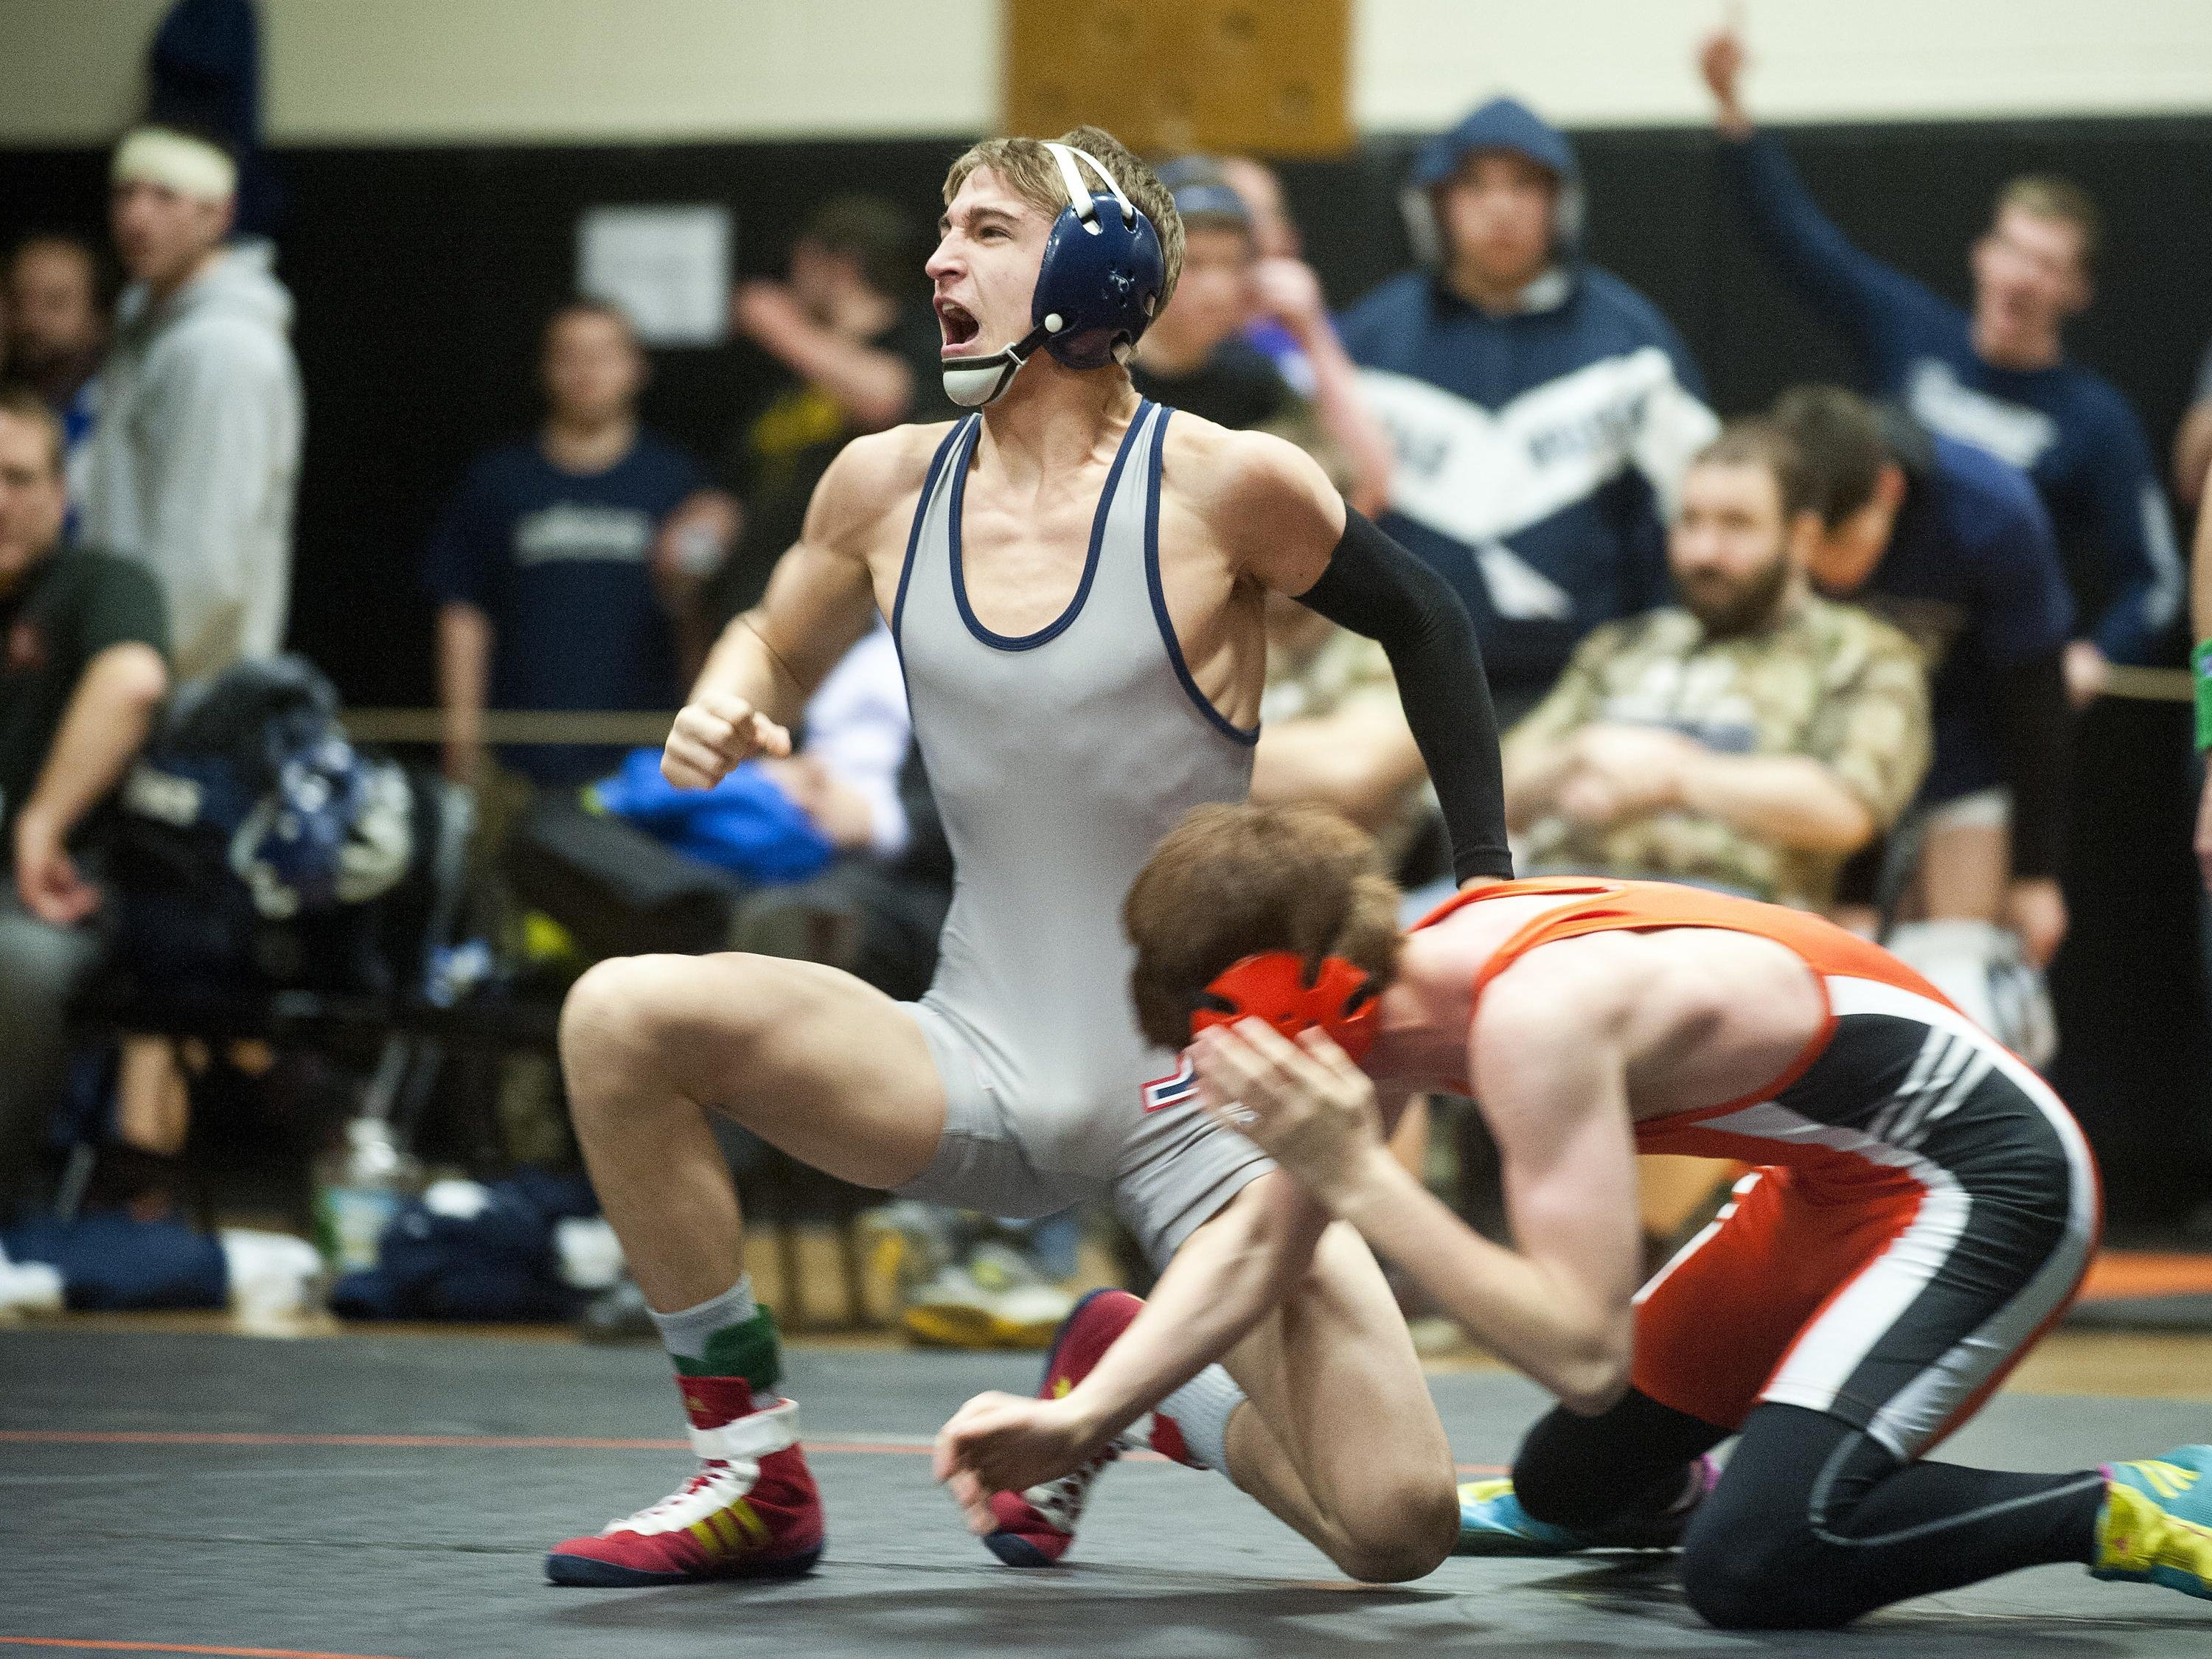 Mount Anthony's Calvin Call reacts after his first-period pin of Middlebury's Nathan Gebo in the 113-pound state championship at Middlebury on Saturday night.